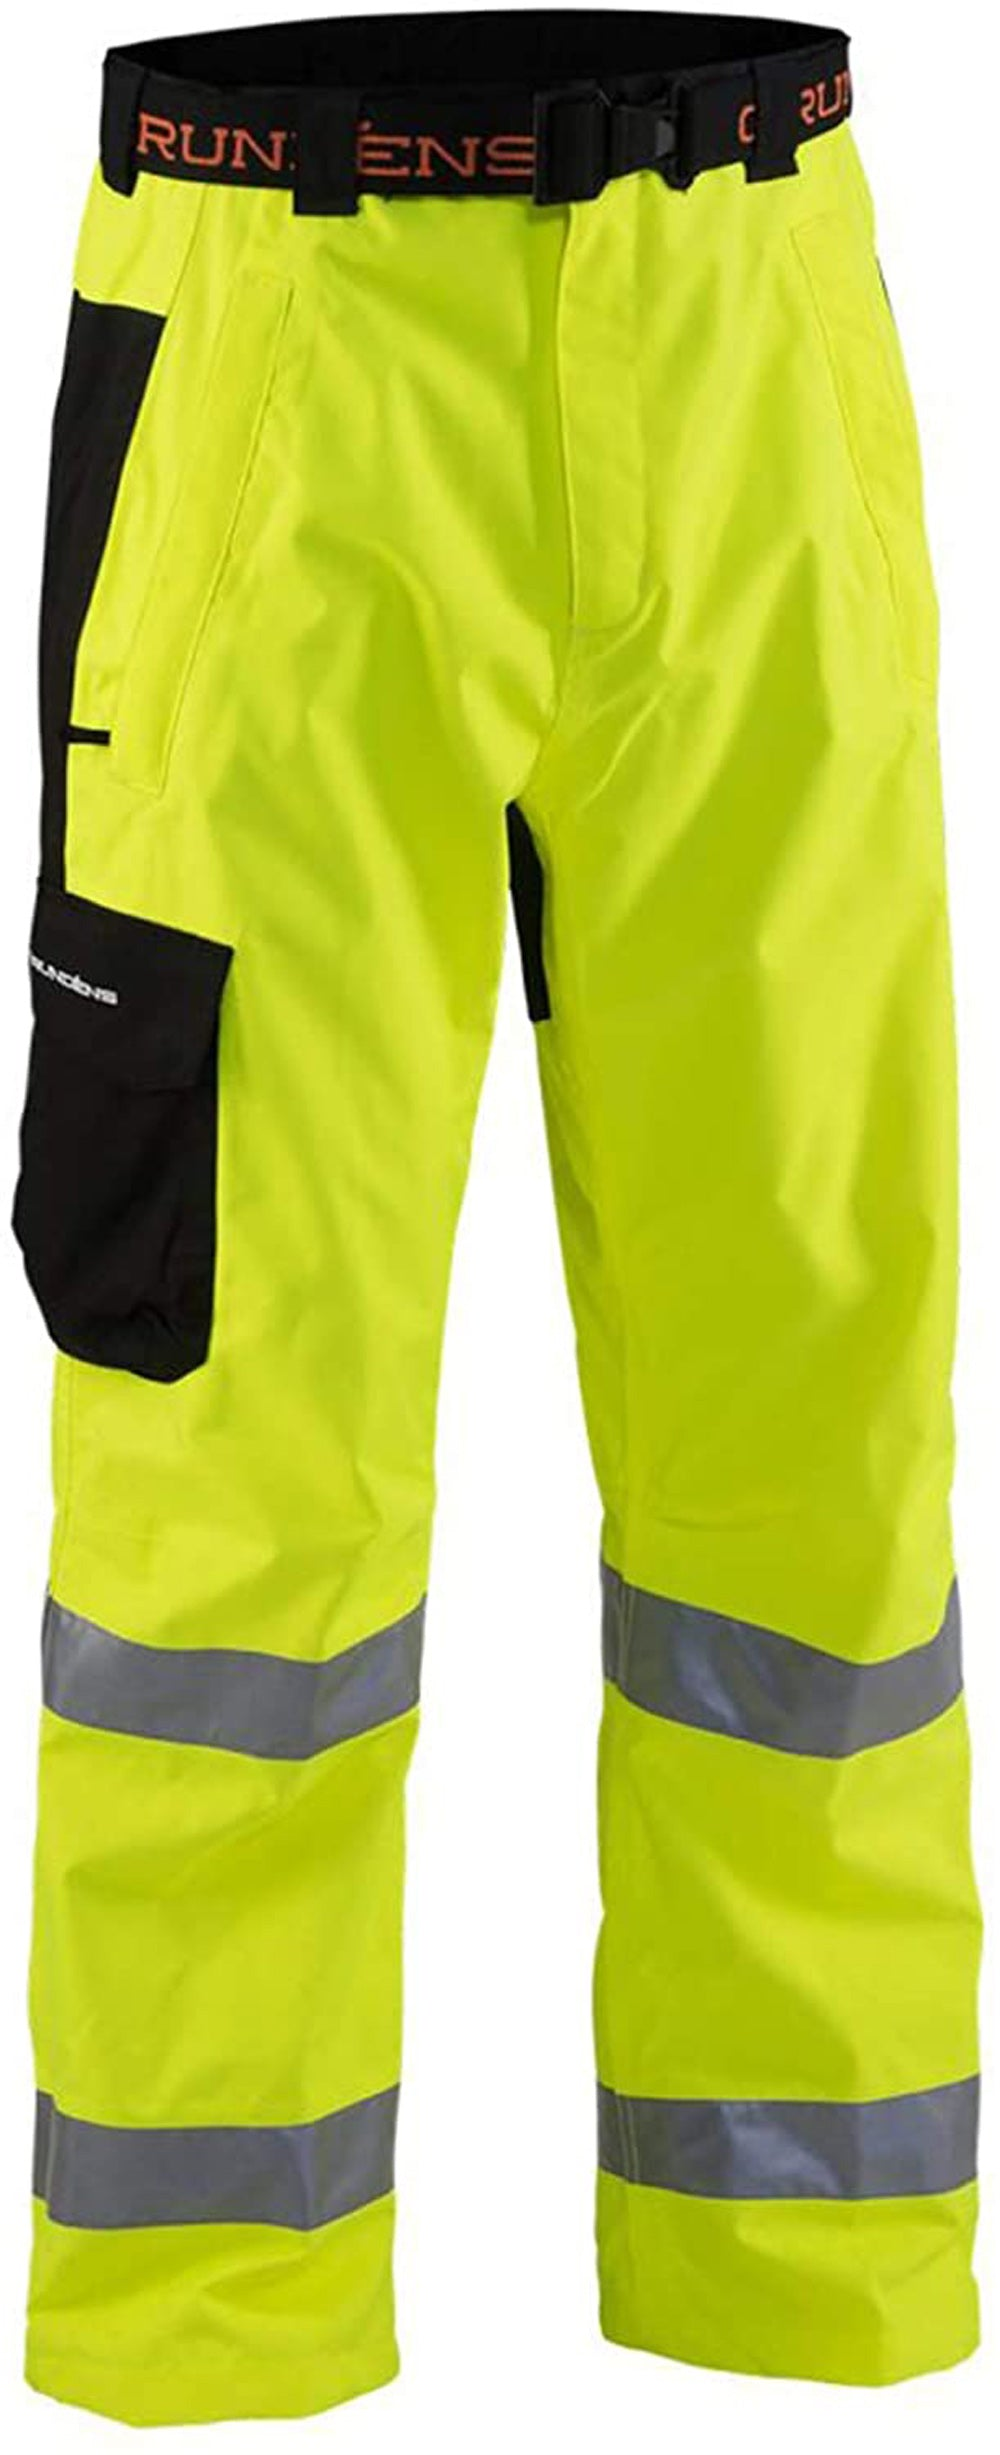 Weather Watch Pant in Reflective Yellow color